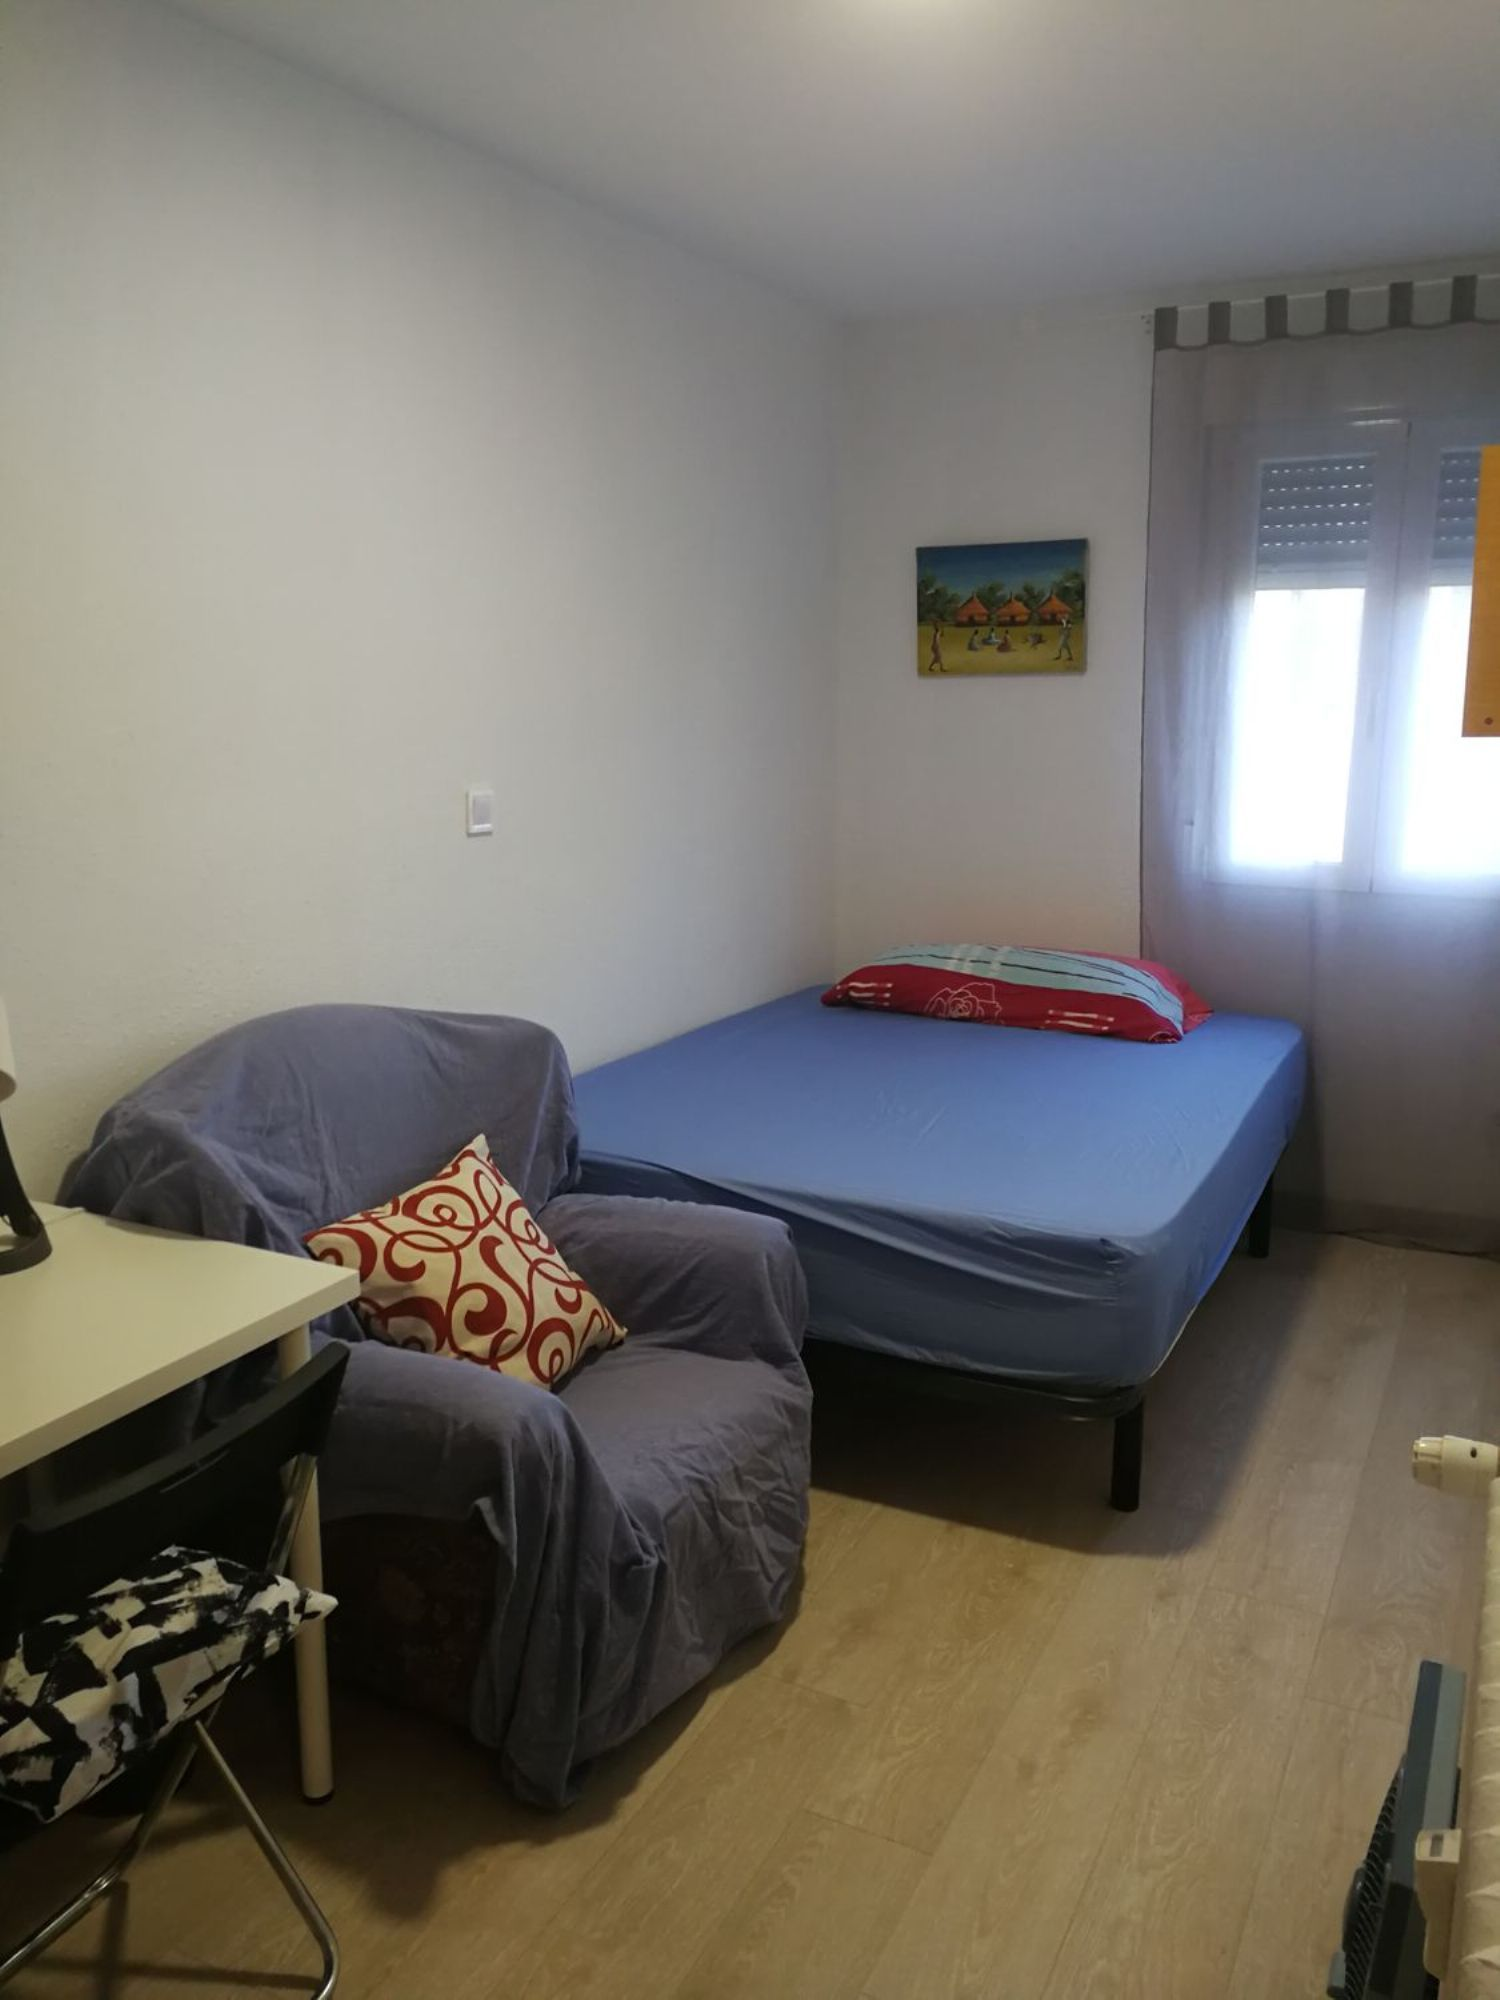 Rent A Room In Madrid Rooms For Rent Room Rent